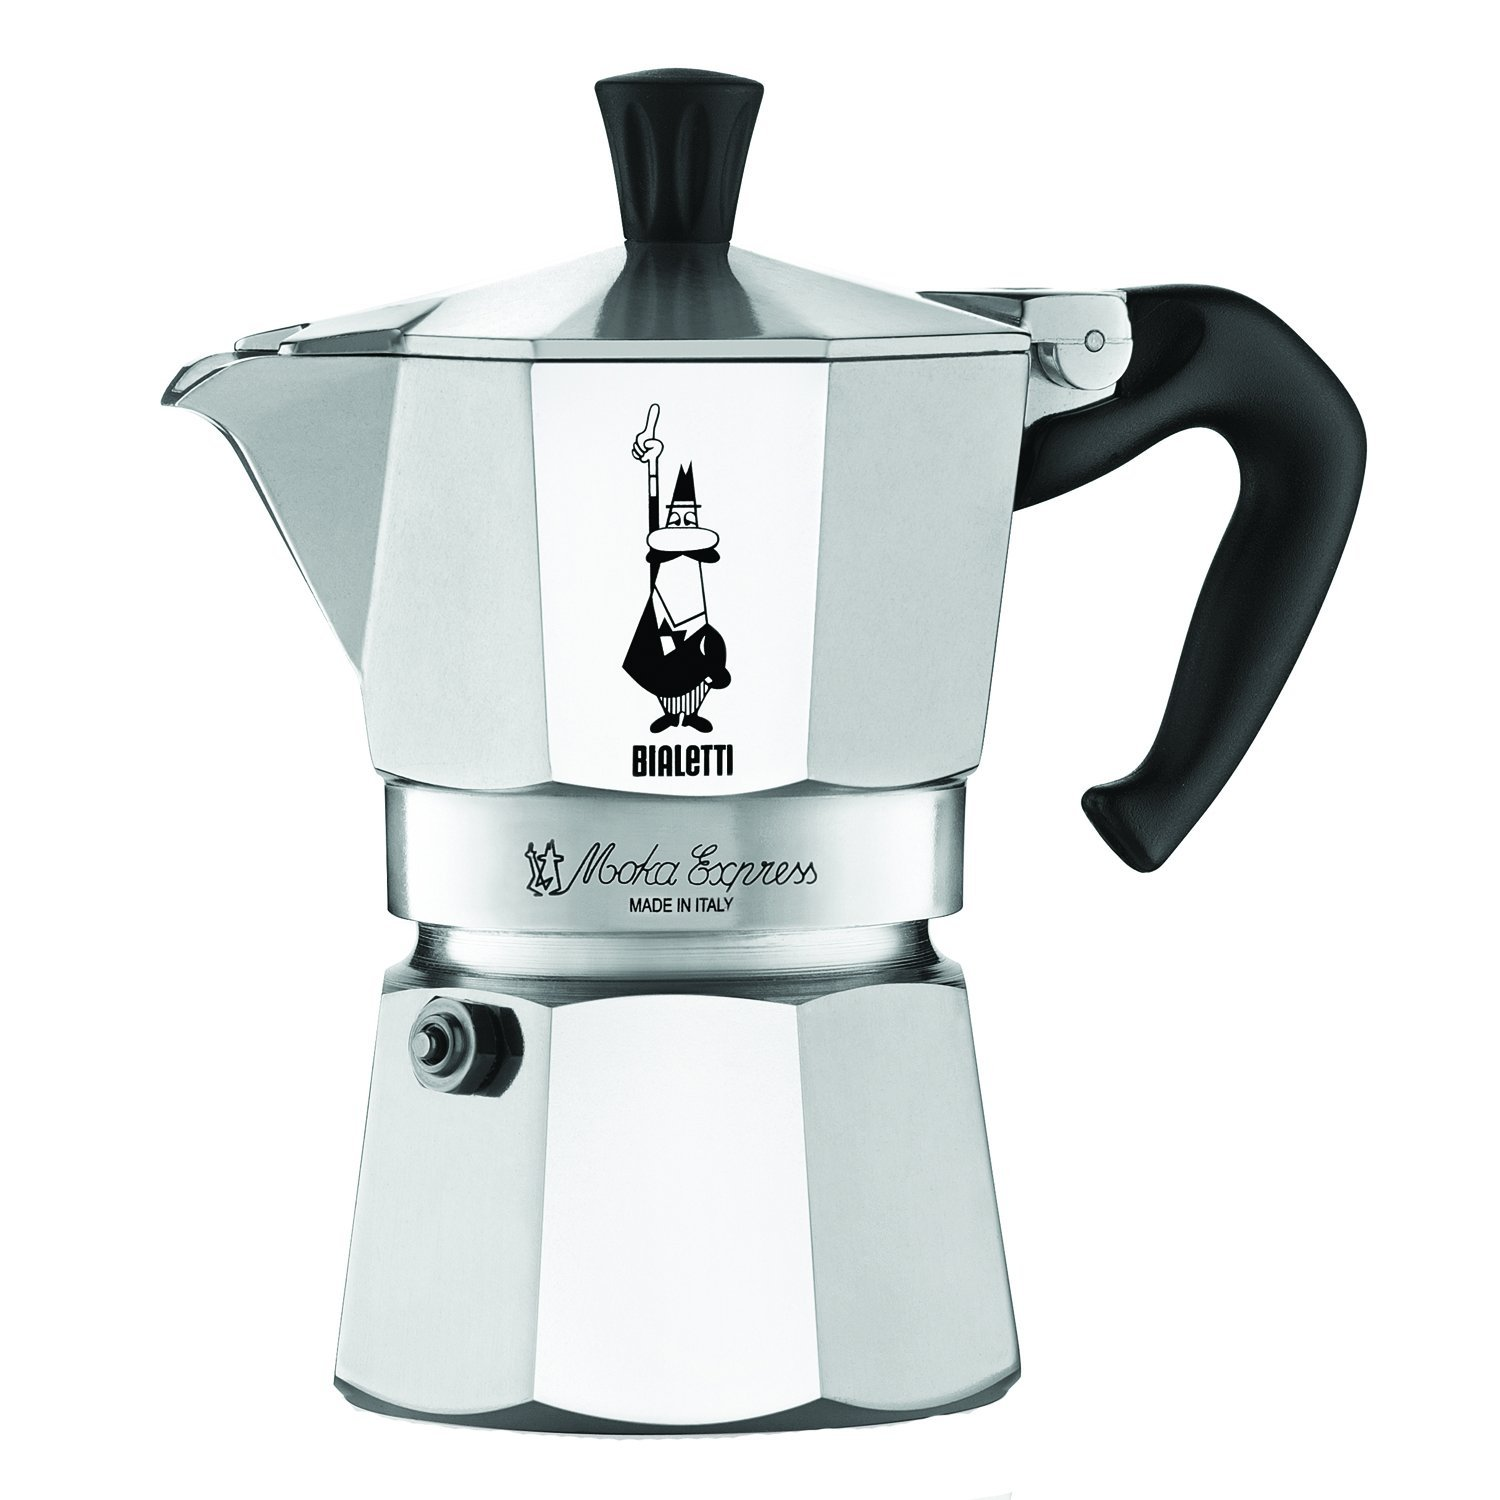 If you are a coffee lover, having the real thing when you're camping is INCREDIBLE.